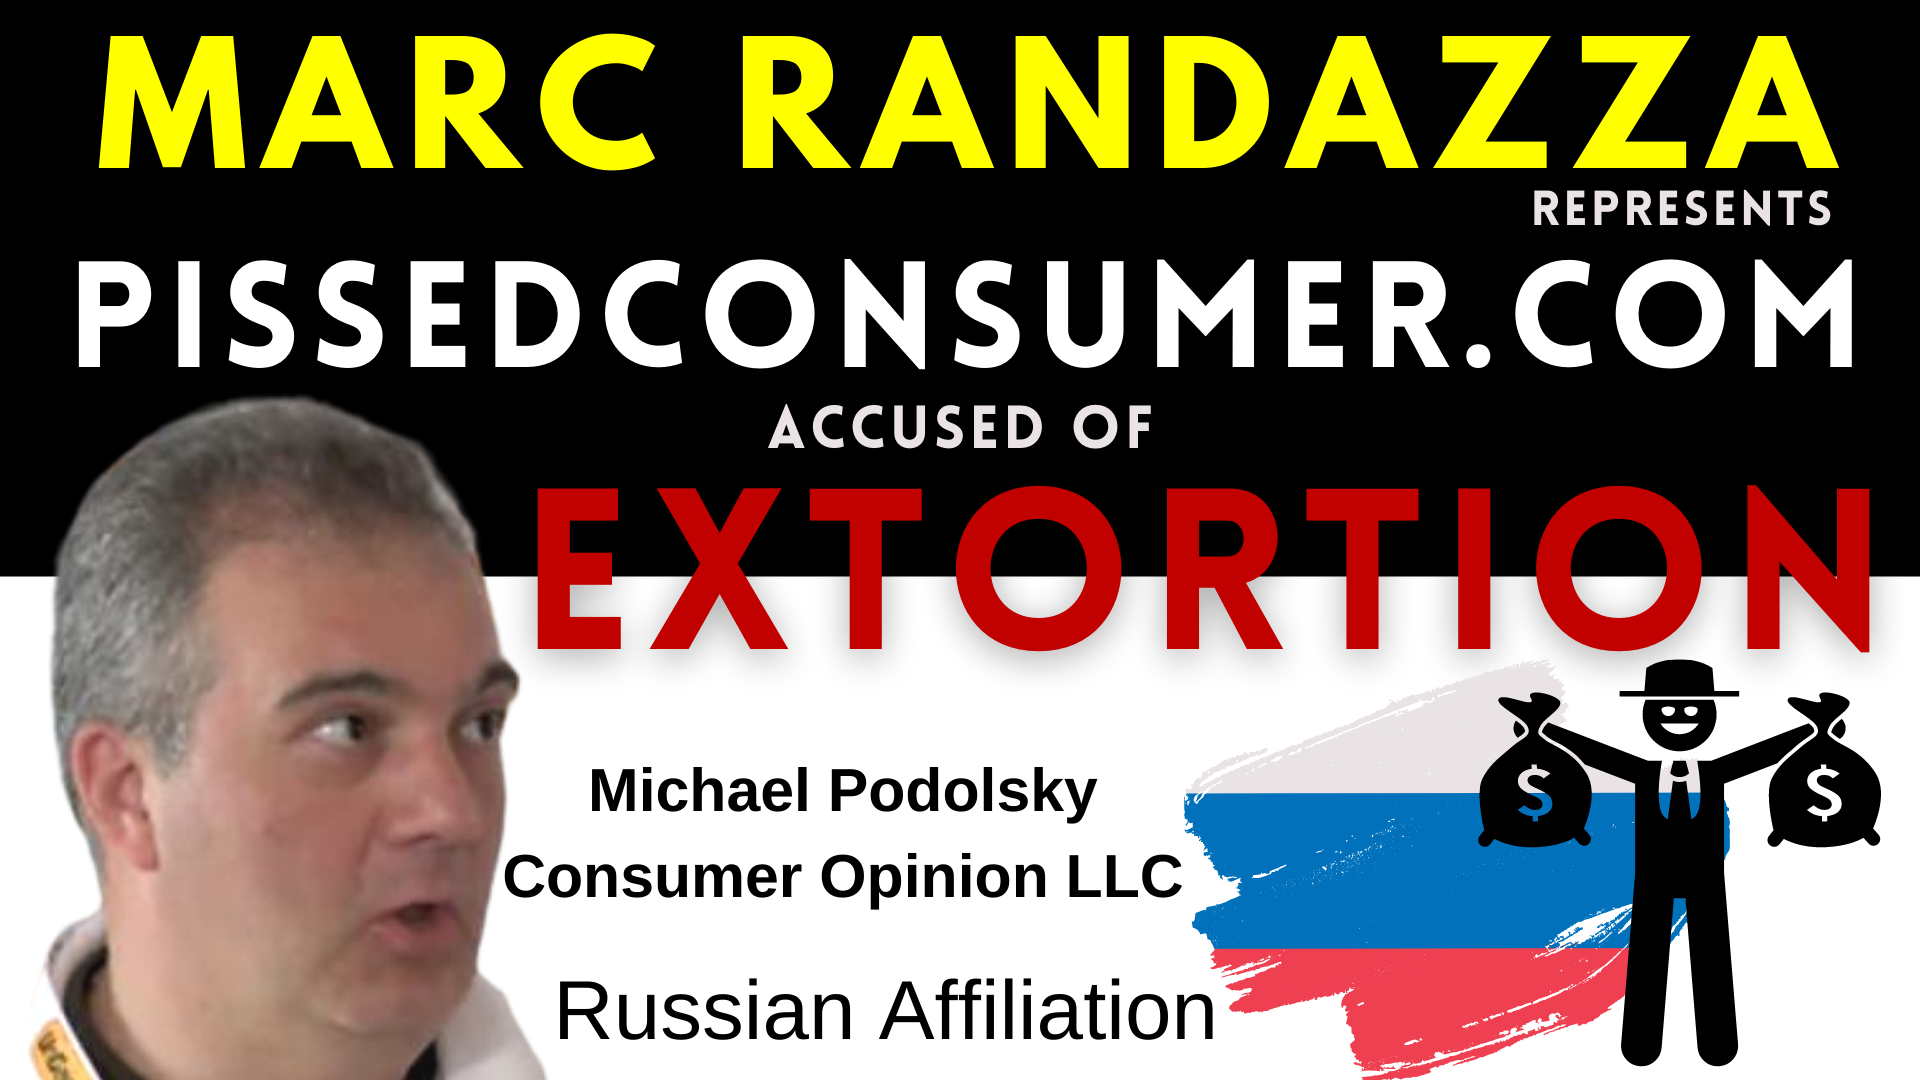 Marc Randazza represents PISSEDCONSUMER accused of EXTORTION of small businesses by Michael Podolsky from consumer Opinion